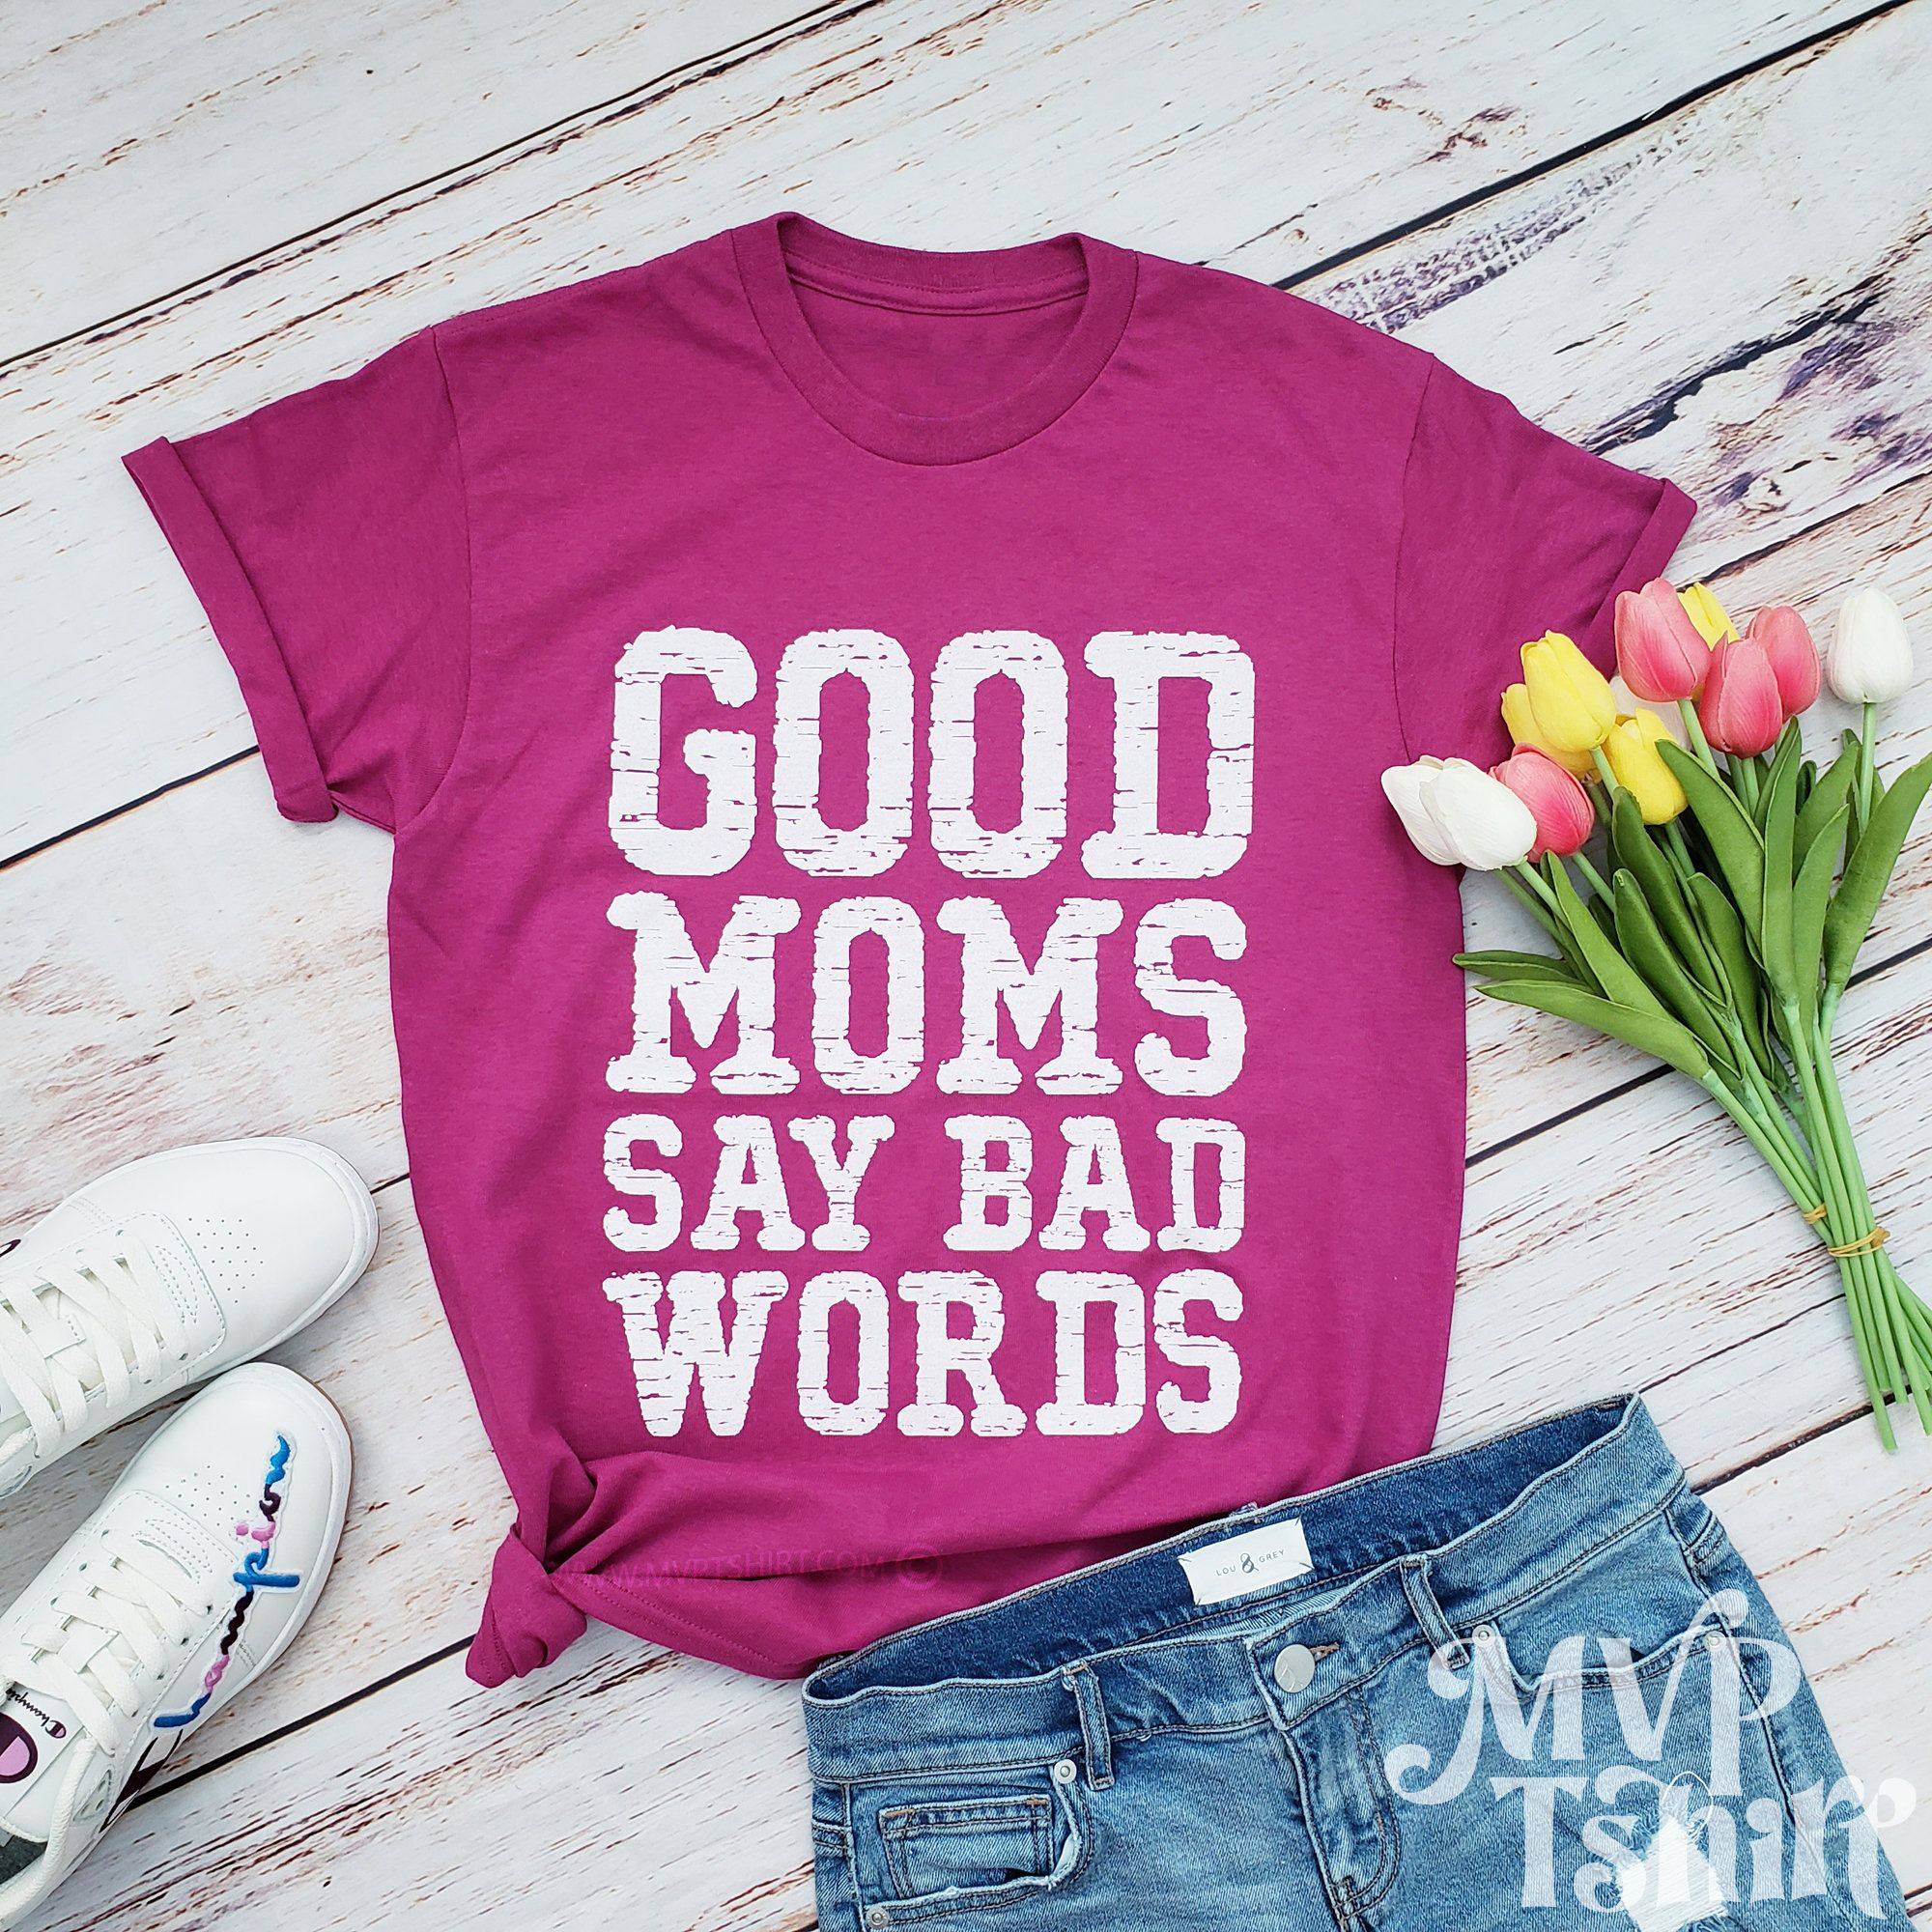 Good Moms Say Bad Words Shirt, Quotes about life, Funny shirts, Funny mommy shirt, Humor mom shirt, Gift for her